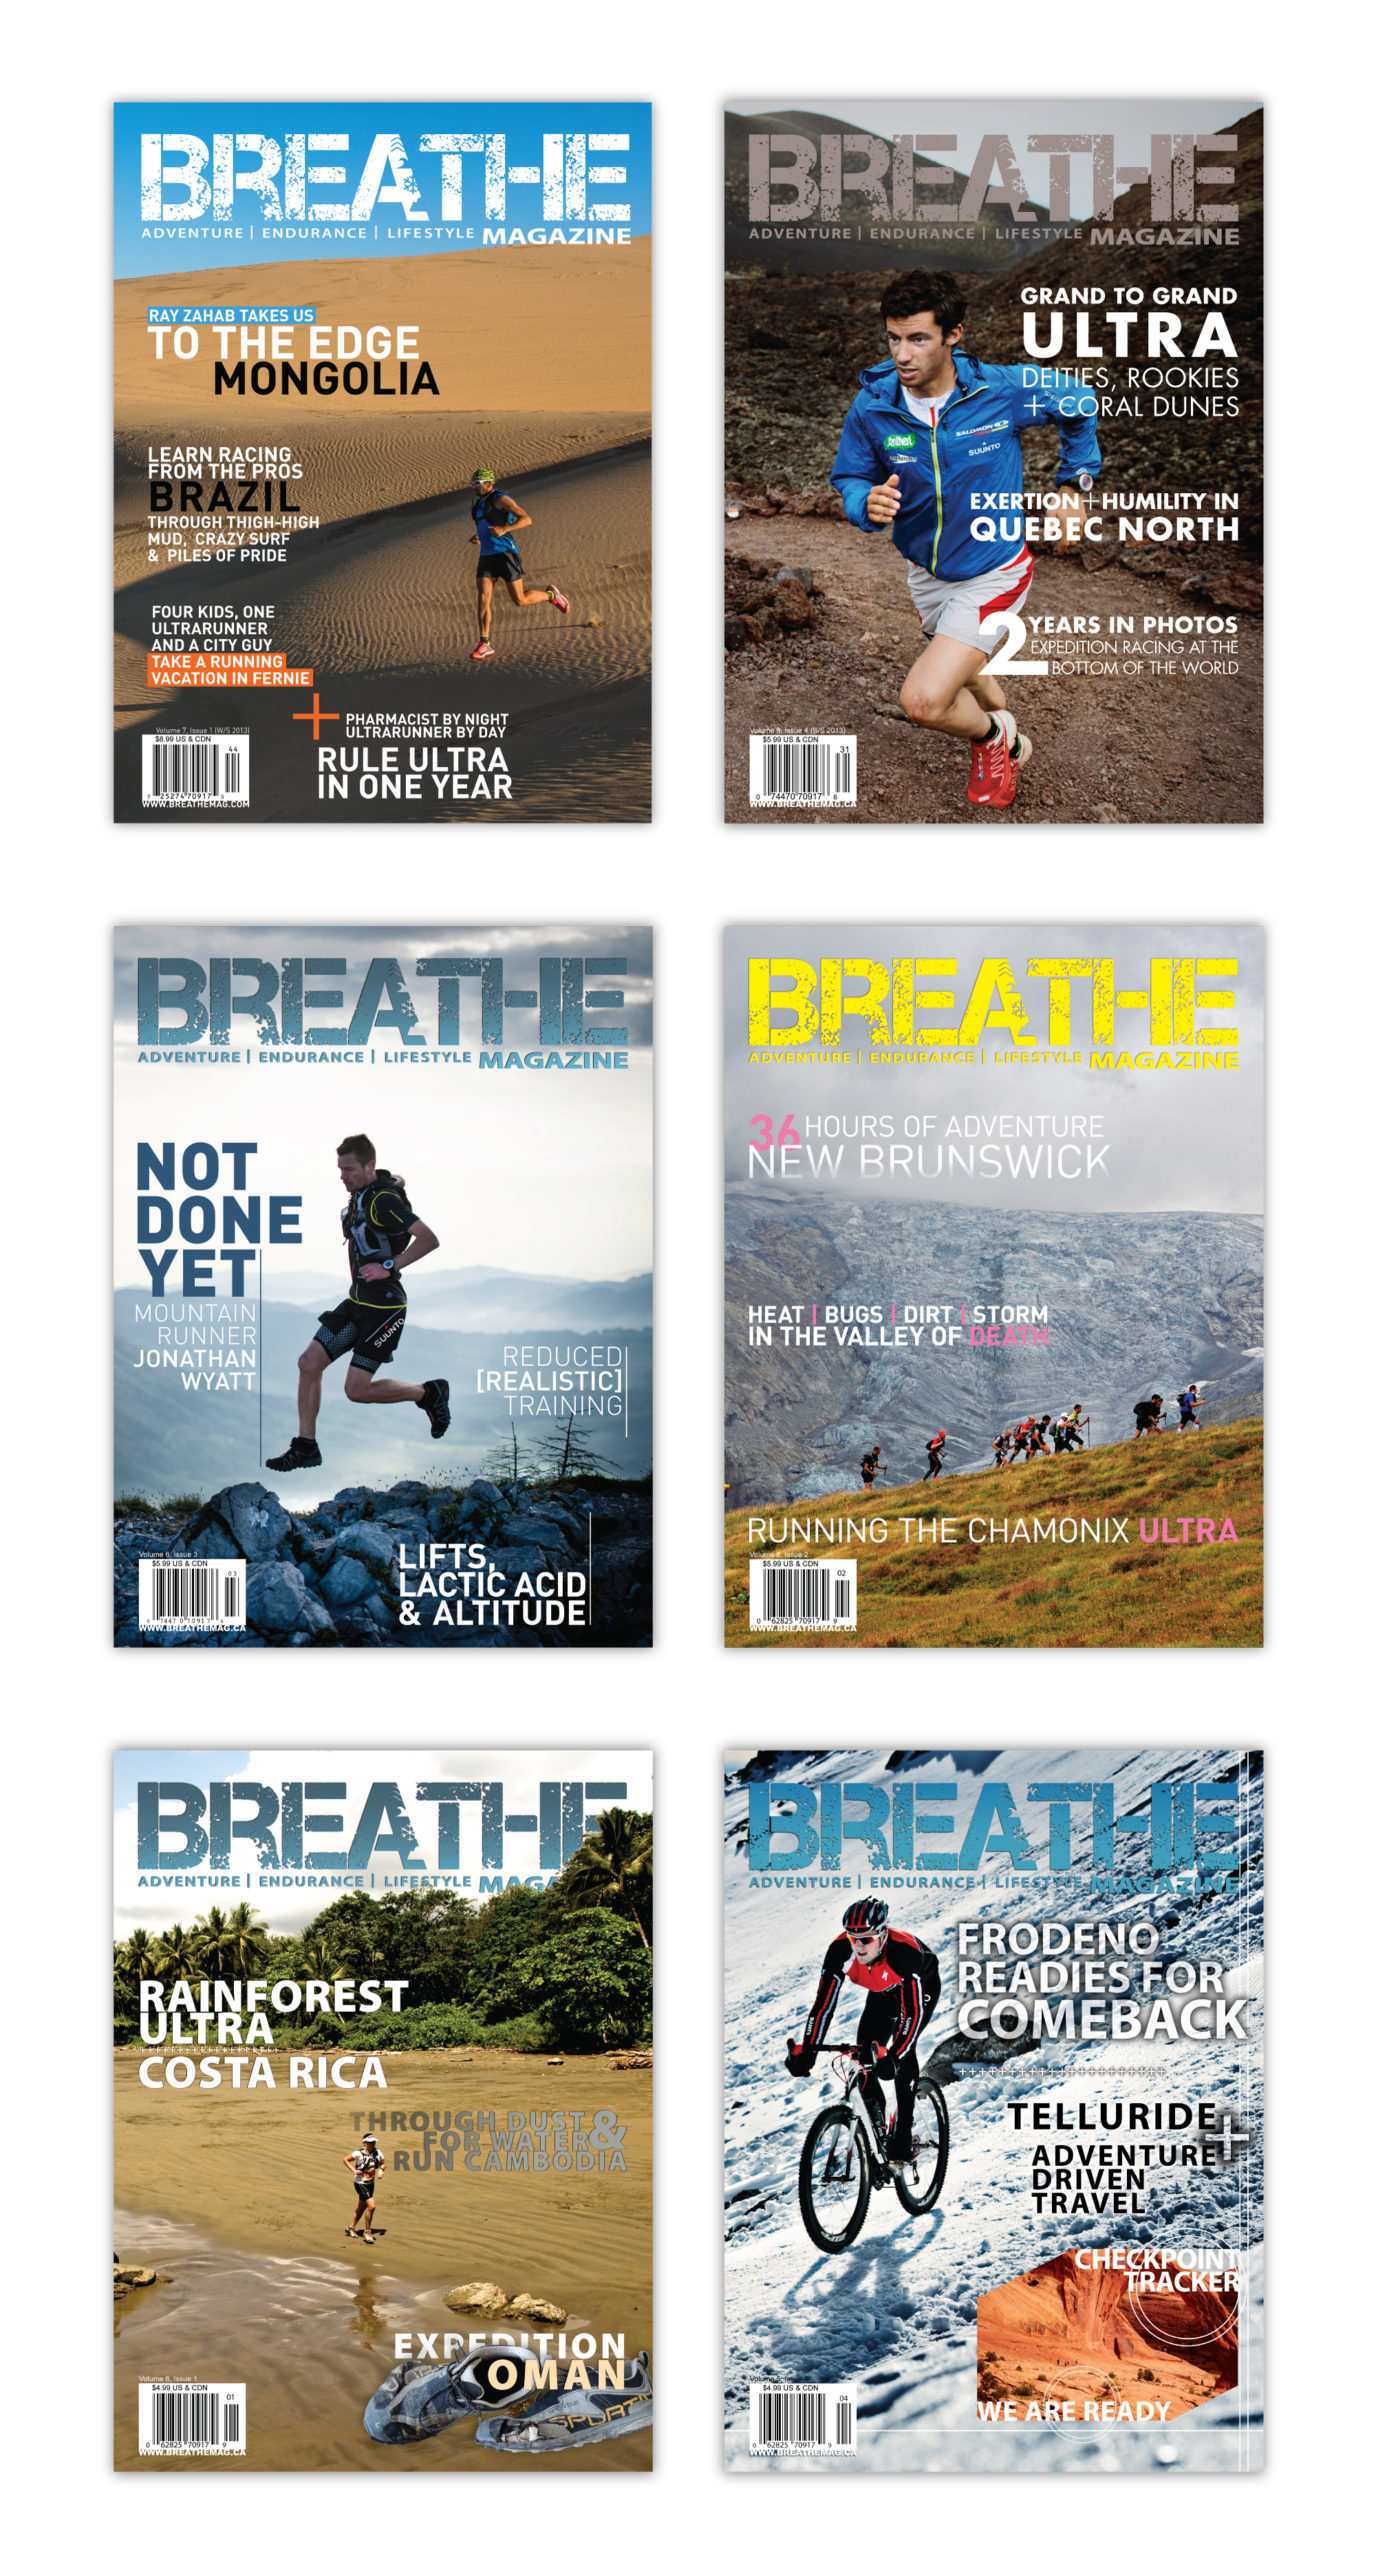 breathe_mag_covers_collage